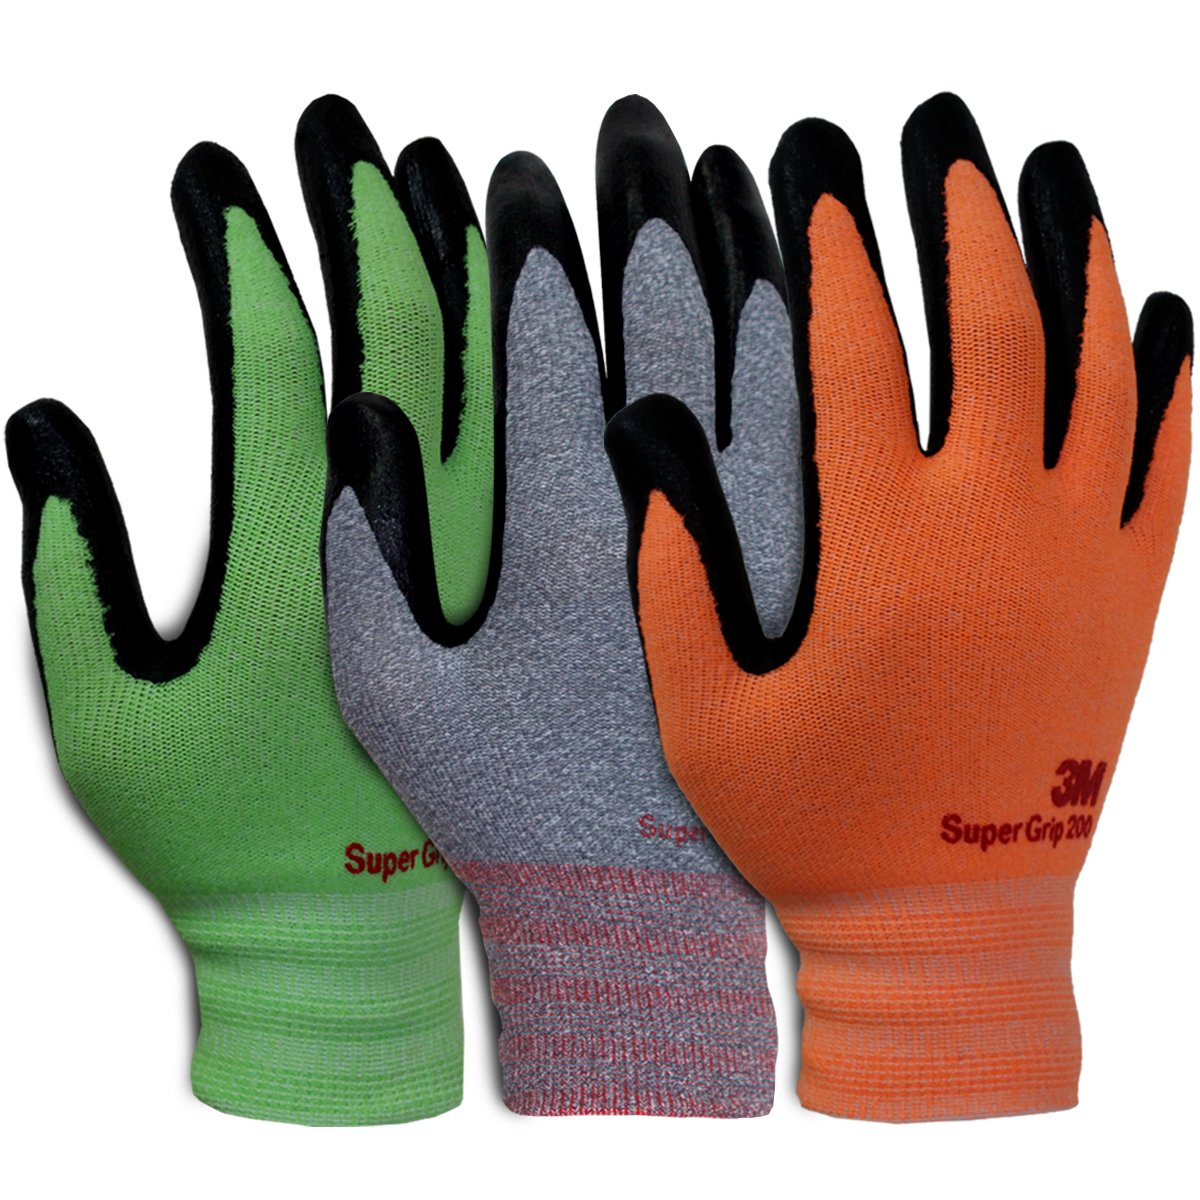 3M Super Grip Garden Work Gloves- 3 PACK (Large)